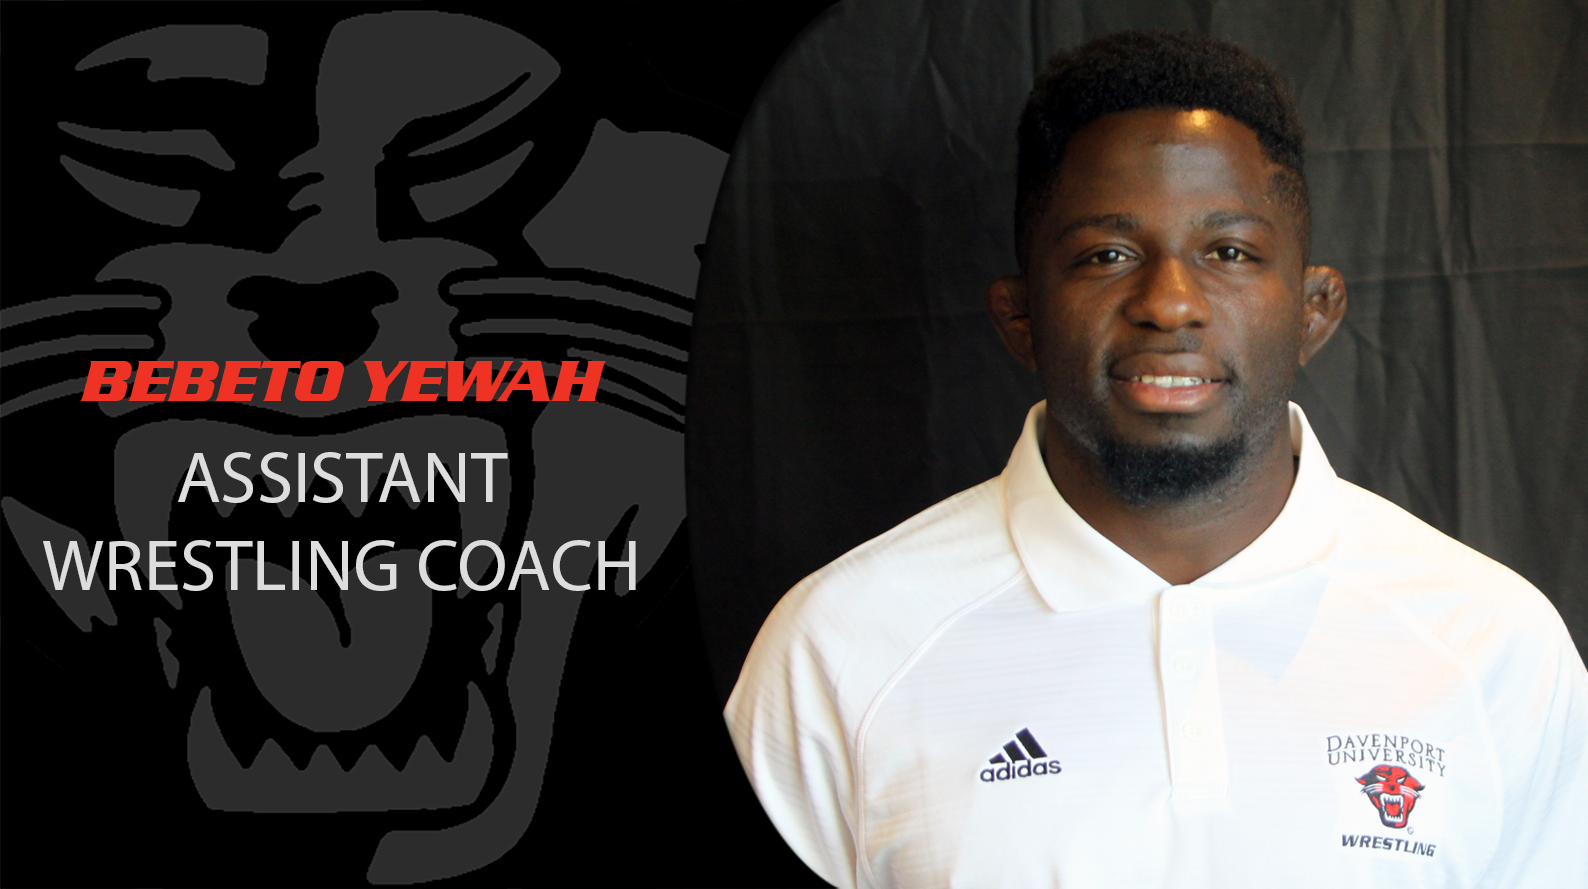 Bebeto Yewah promoted to wrestling assistant coach - Davenport